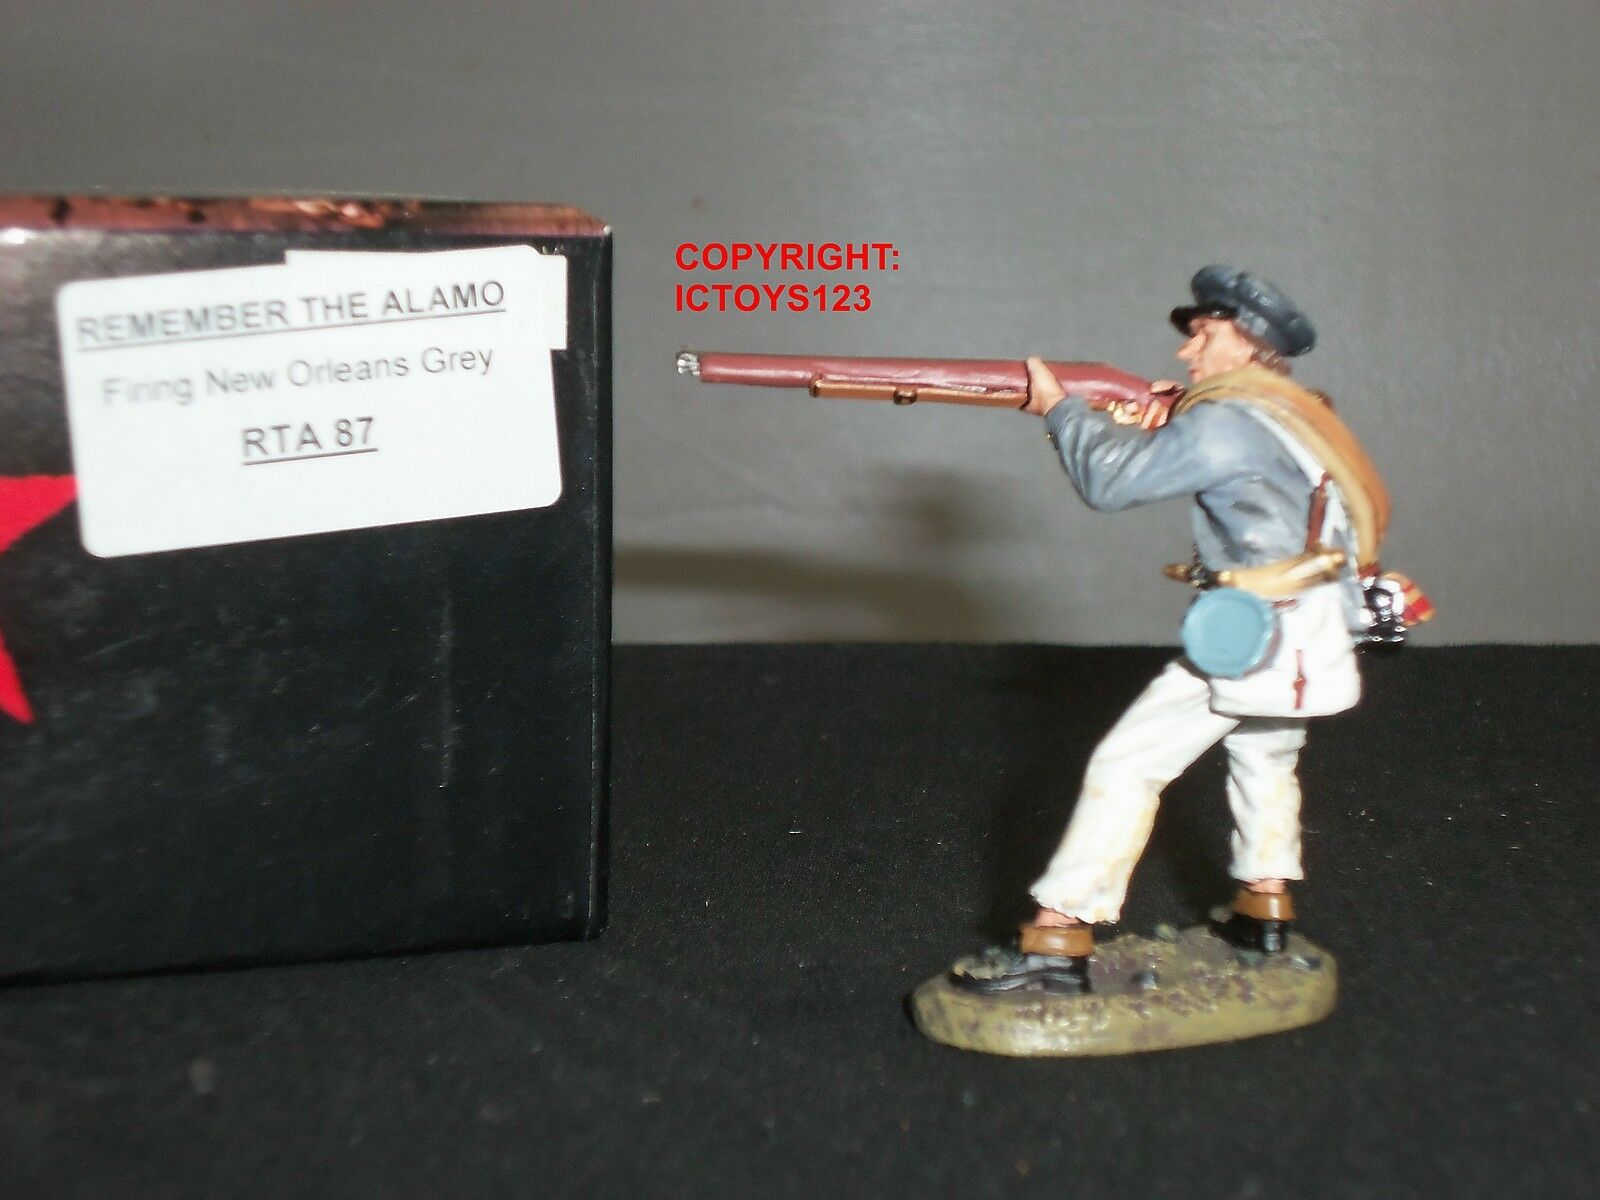 KING AND COUNTRY RTA87 ALAMO NEW ORLEANS GREY STANDING FIRING TOY SOLDIER FIGURE